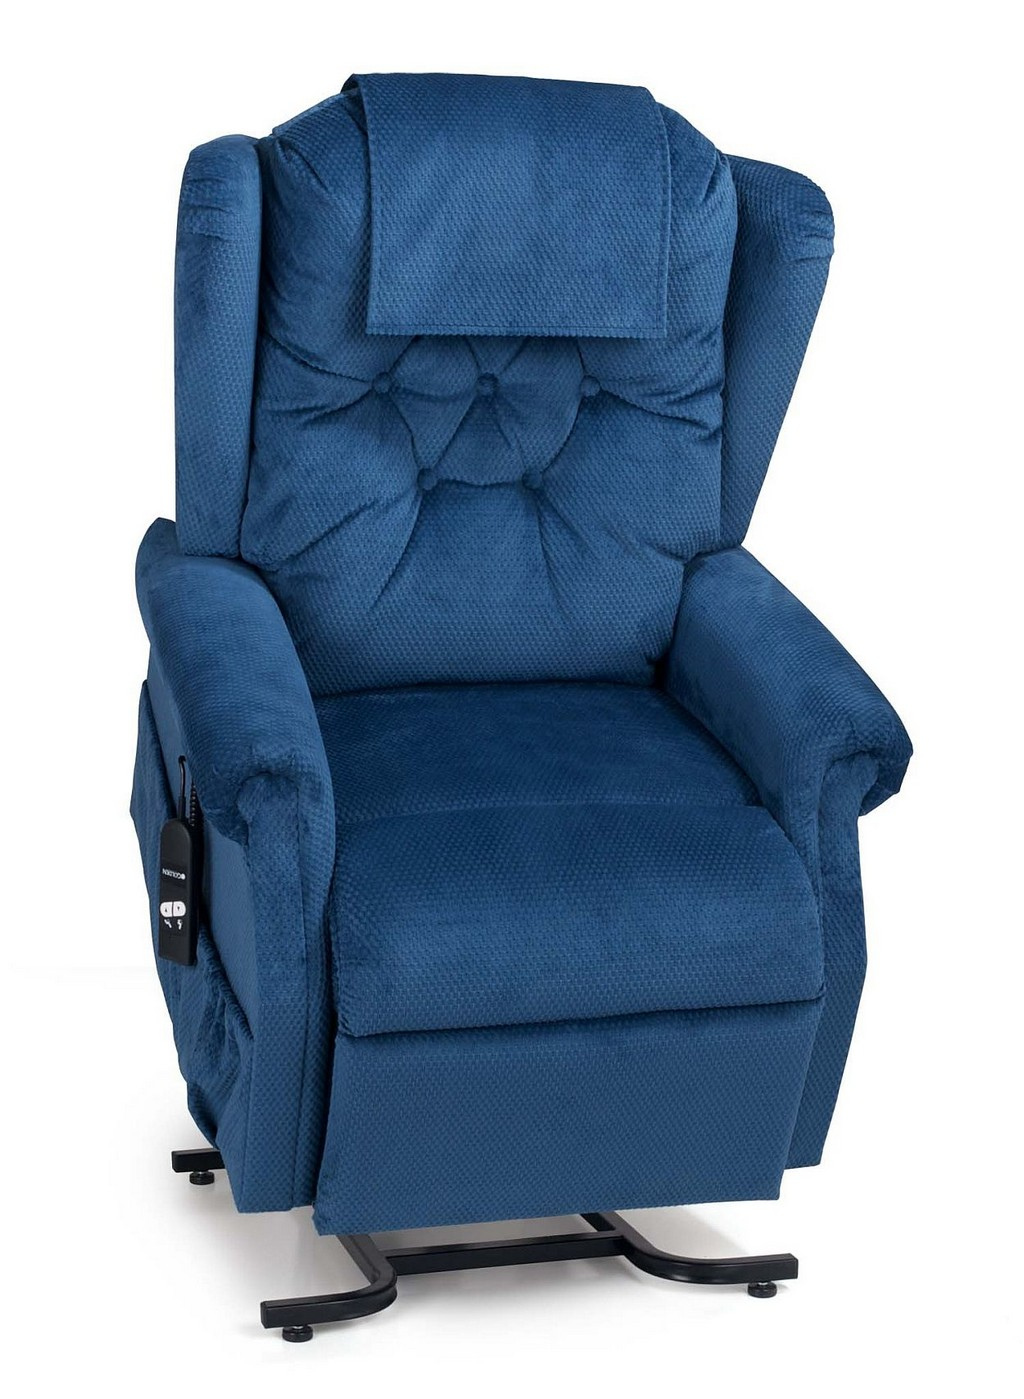 lift chairs recliner with massage, electric lift chairs, lift chais full recline chair, lift chairs for the elderly